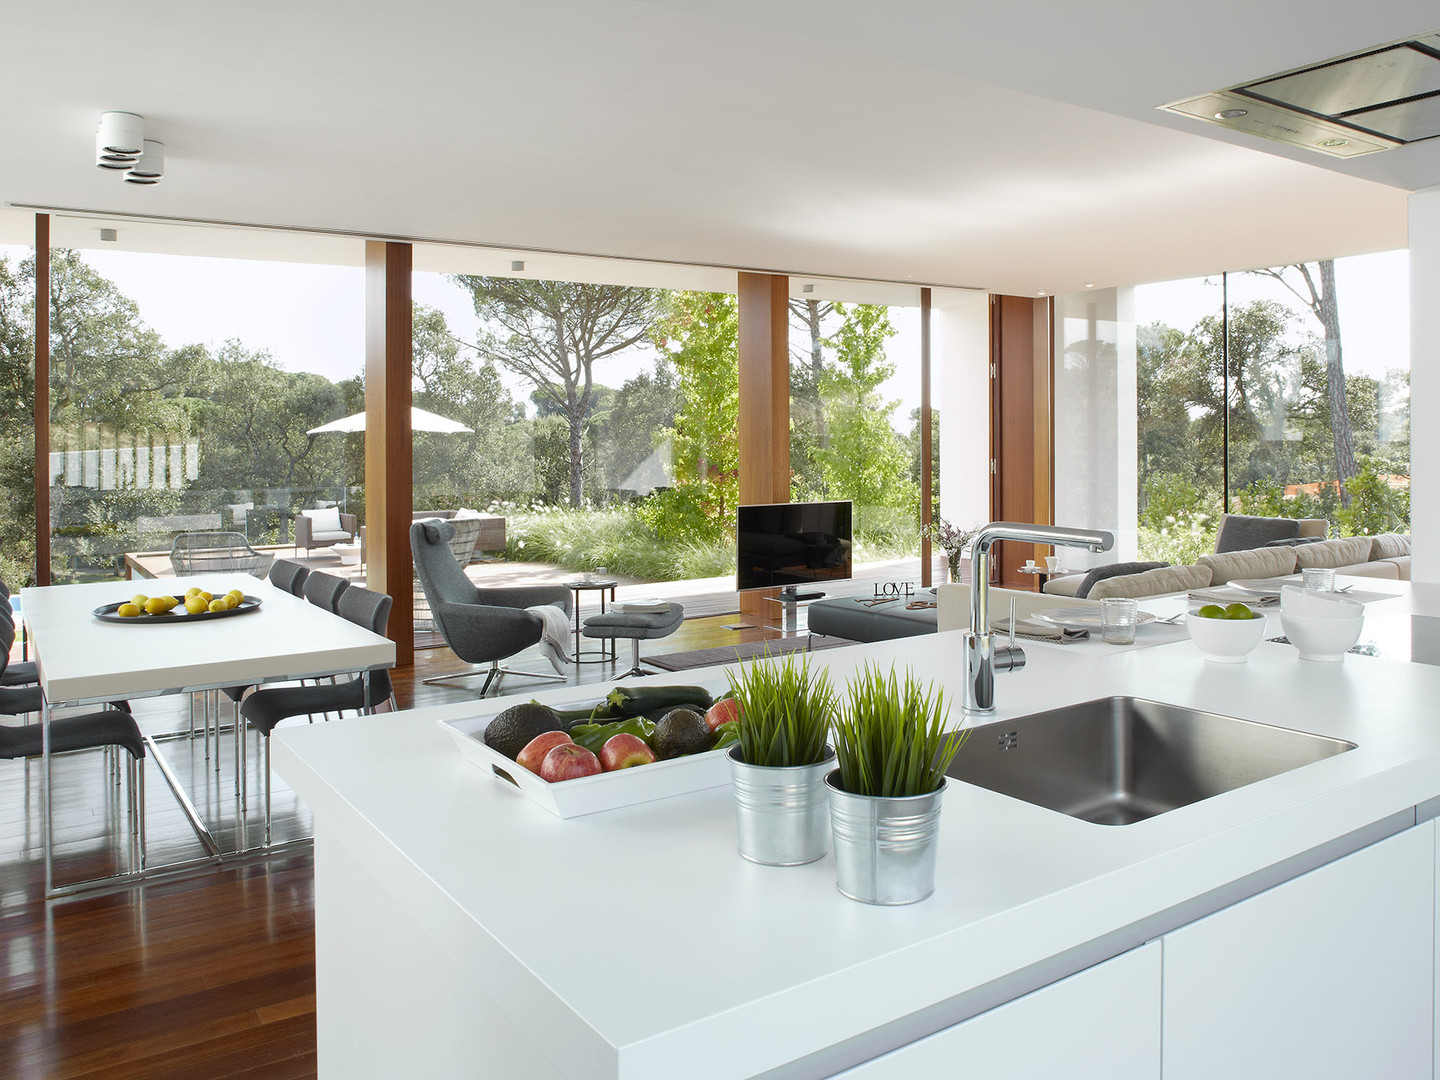 Napoli Modern Kitchen with a View